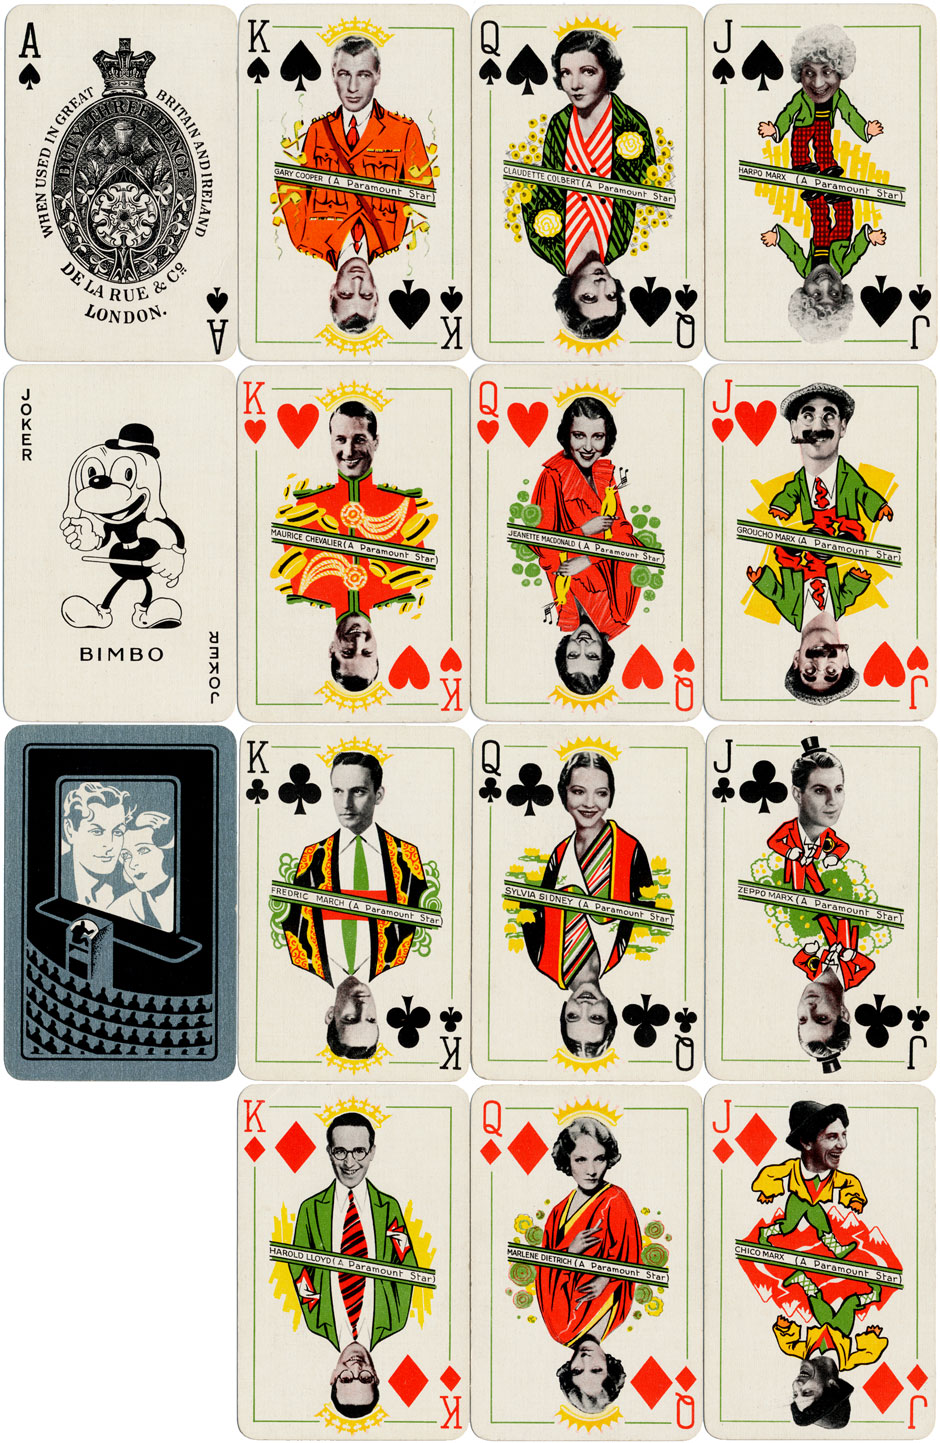 'Film Star Playing Cards' for Paramount manufactured by De la Rue & Co., London, 1933